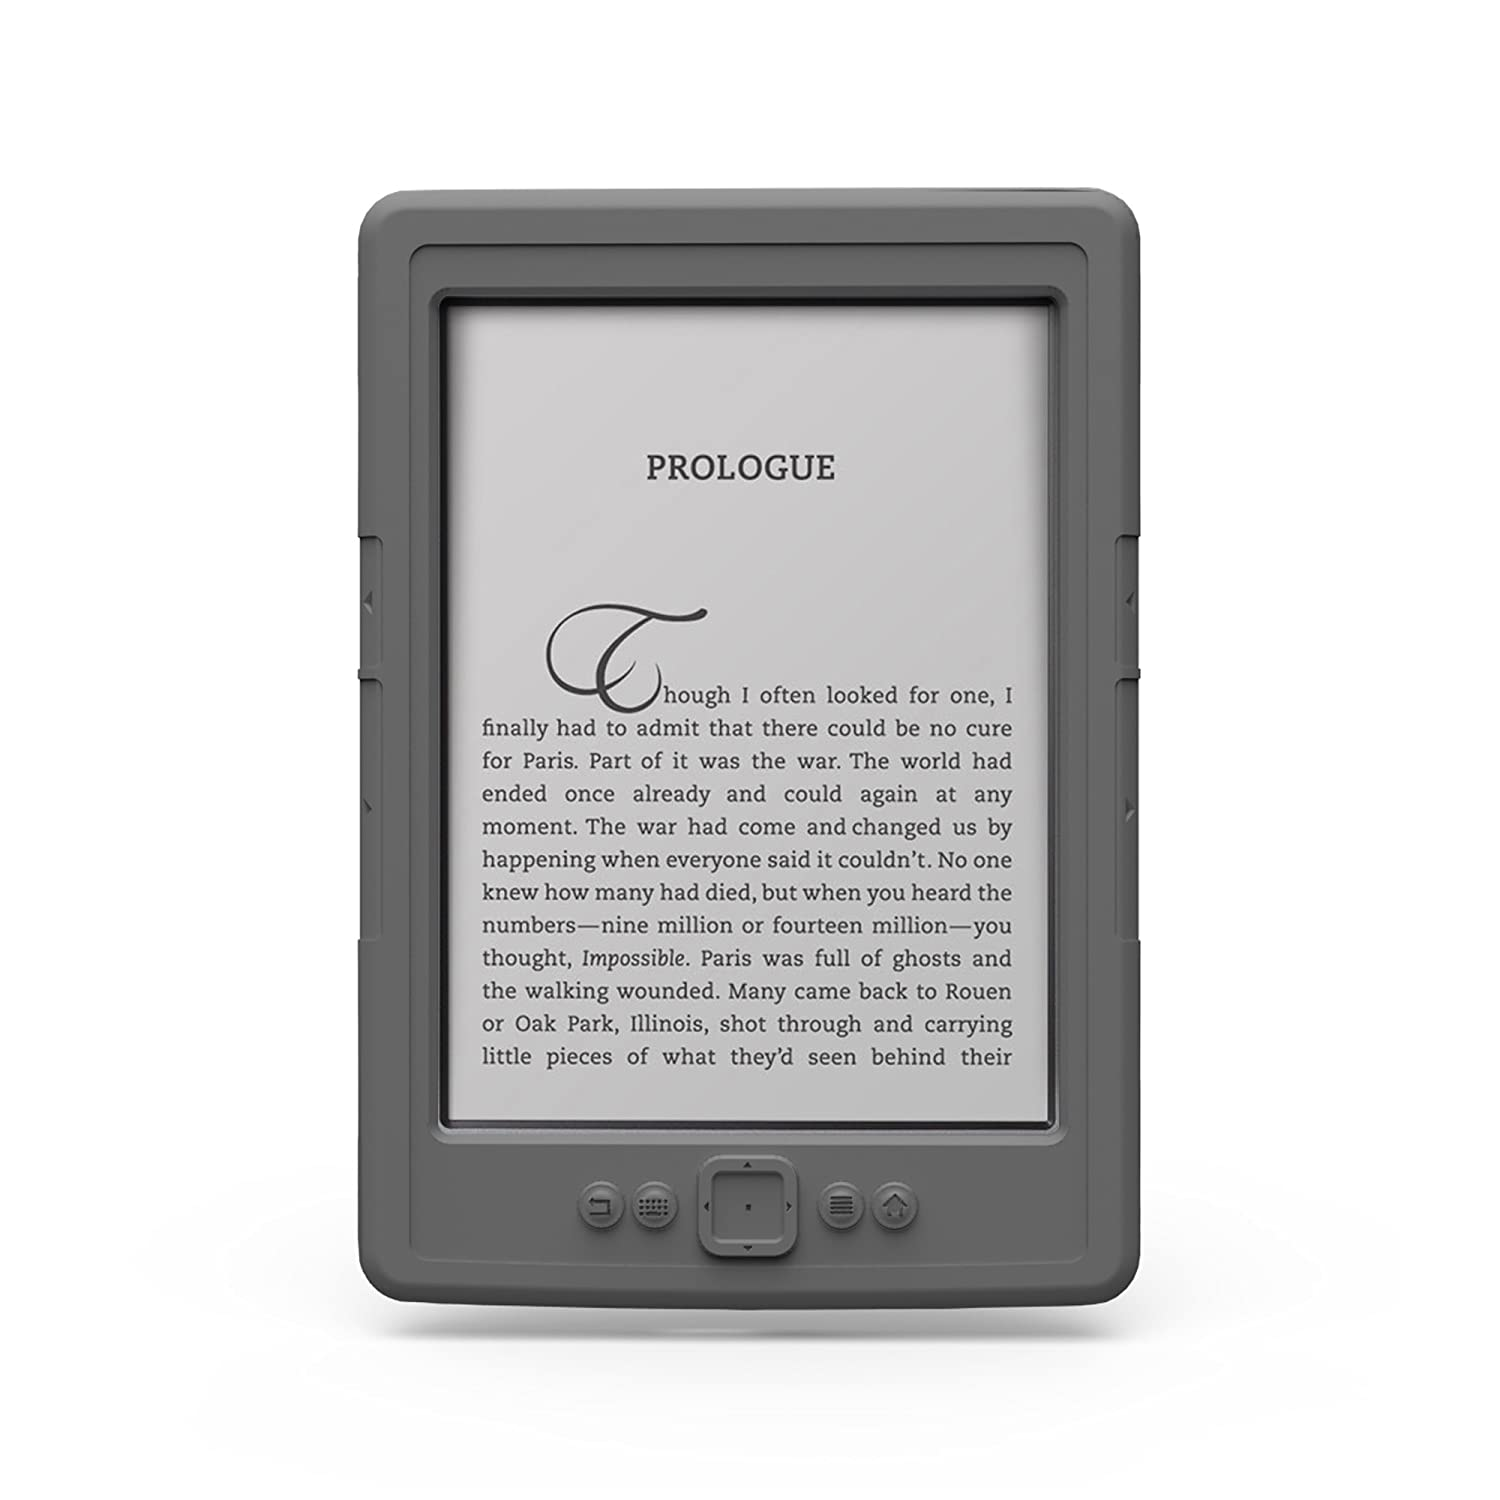 Marware SportGrip Silicone Skin Case for Kindle Cover, Gray (does not fit Kindle Paperwhite or Touch)